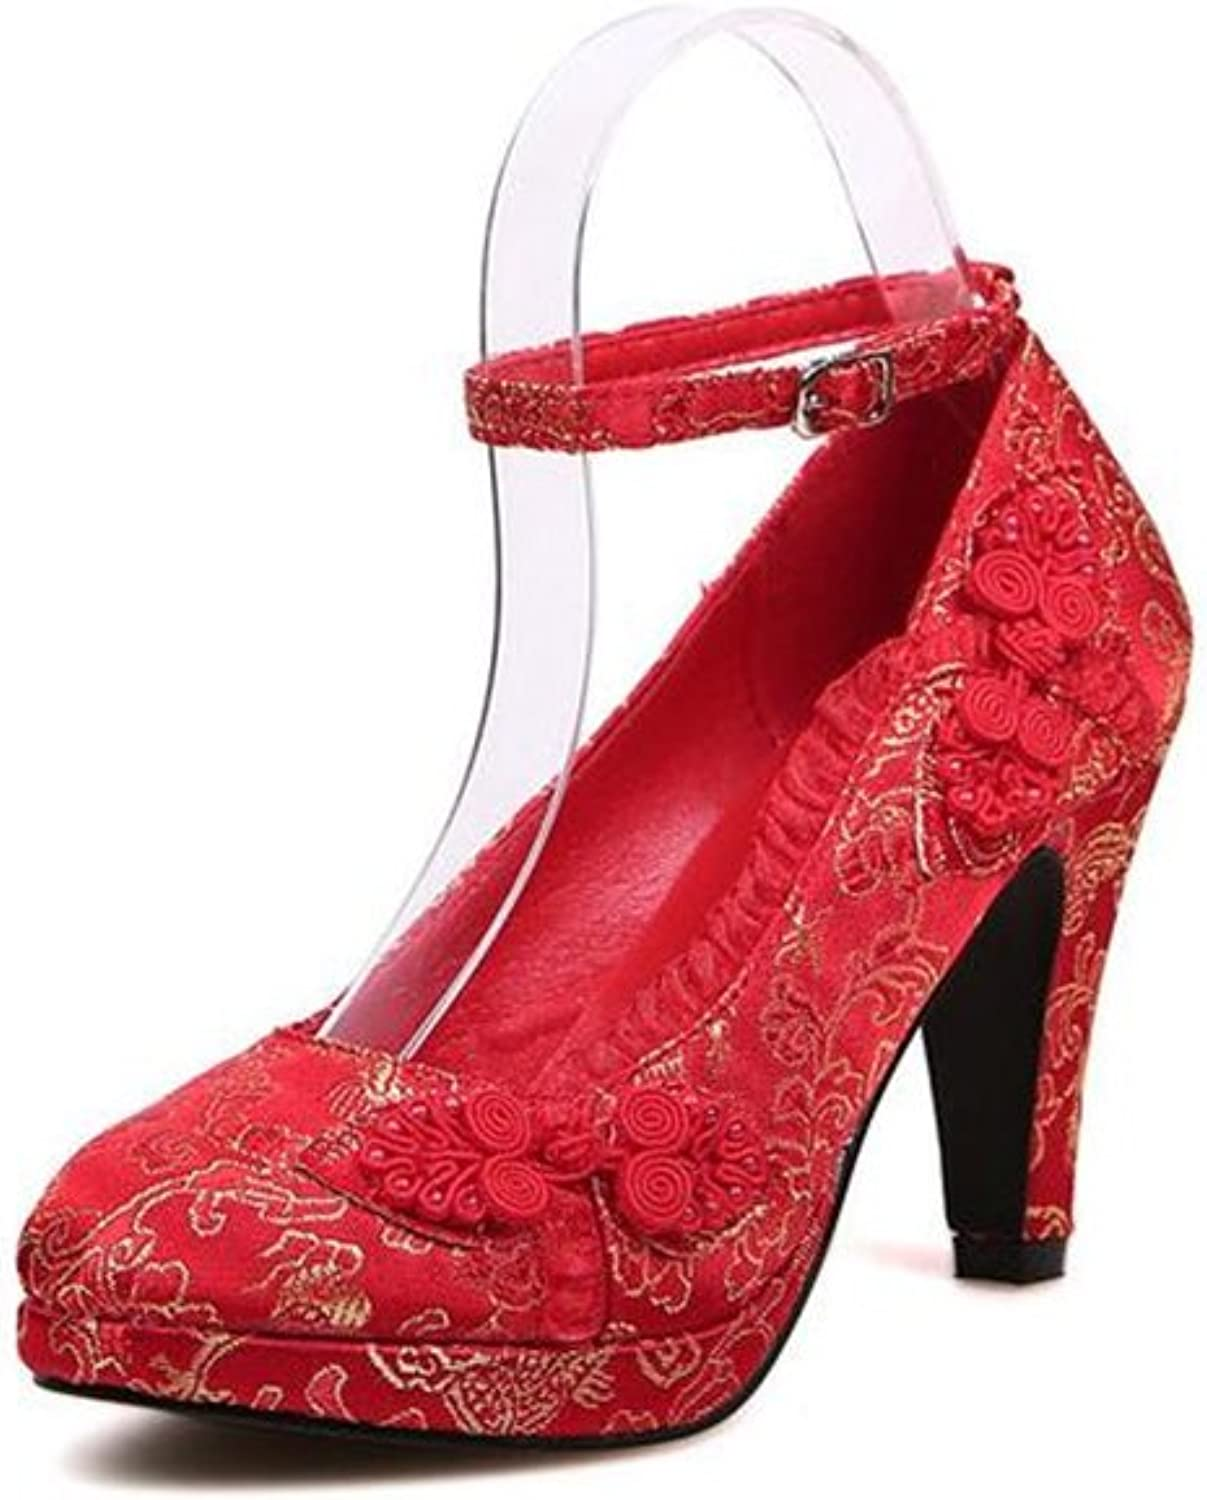 Coloing Wedding shoes Sexy Women shoes with Lace Flowers Bridal shoes High Heel Evening shoes(0 0)